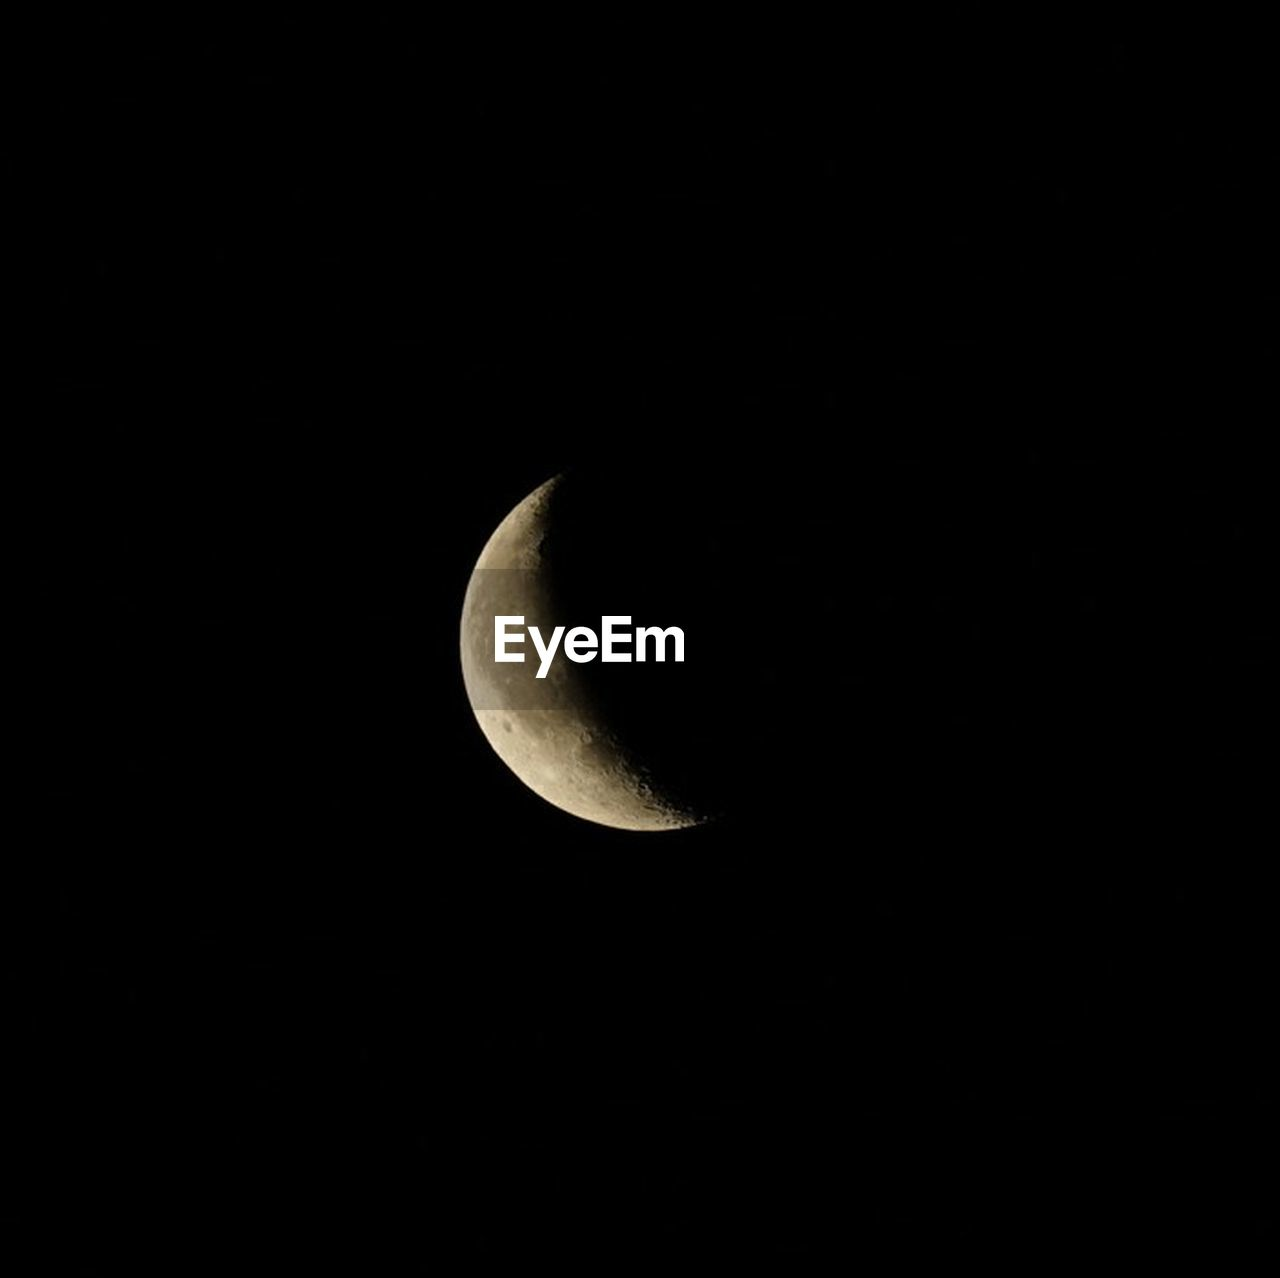 astronomy, moon, night, moon surface, beauty in nature, scenics, space, low angle view, nature, half moon, no people, tranquility, tranquil scene, space exploration, outdoors, crescent, sky, close-up